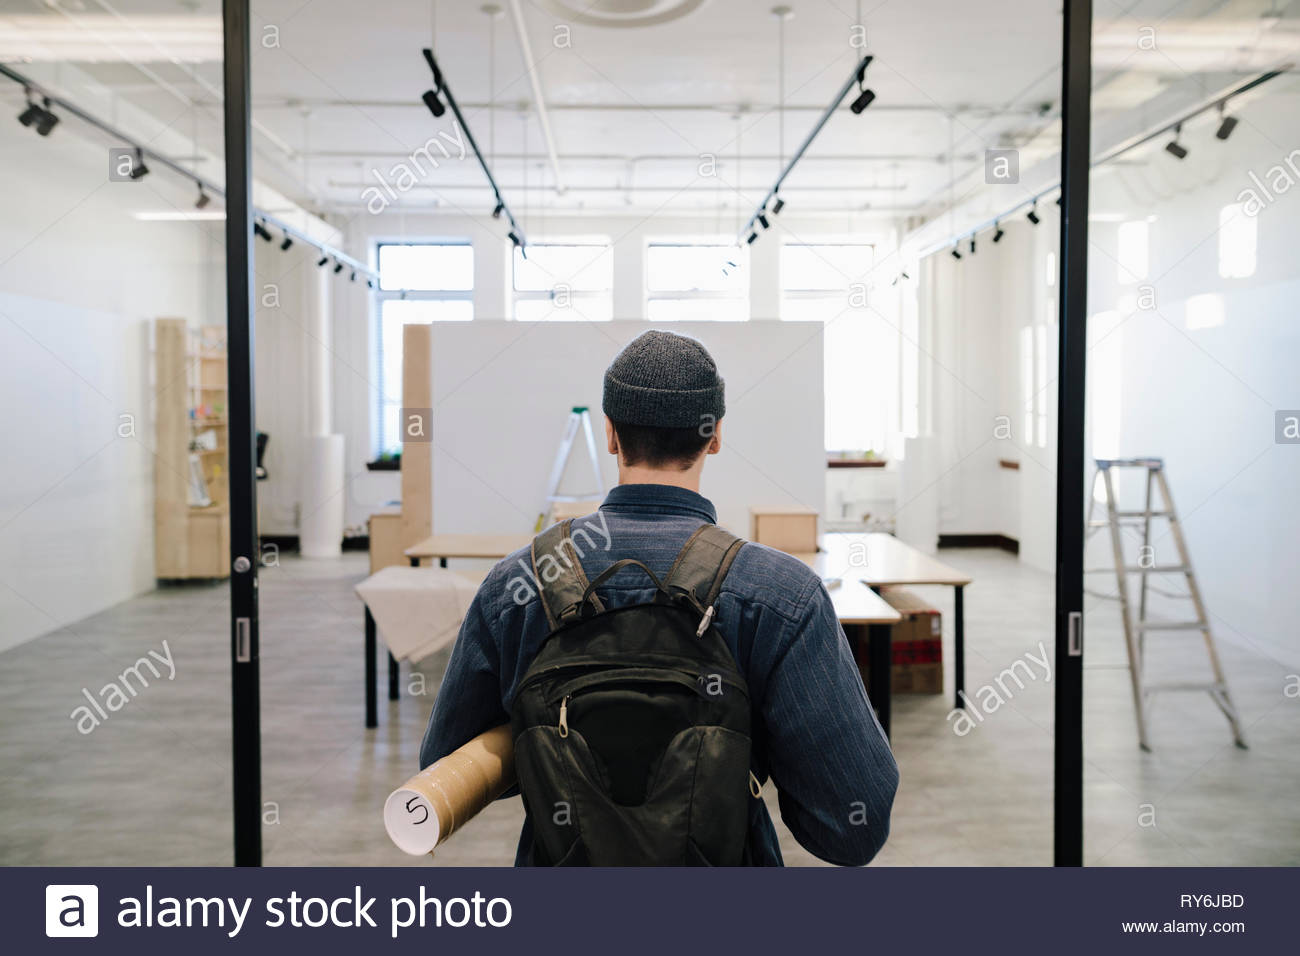 Male artist arriving at art gallery - Stock Image